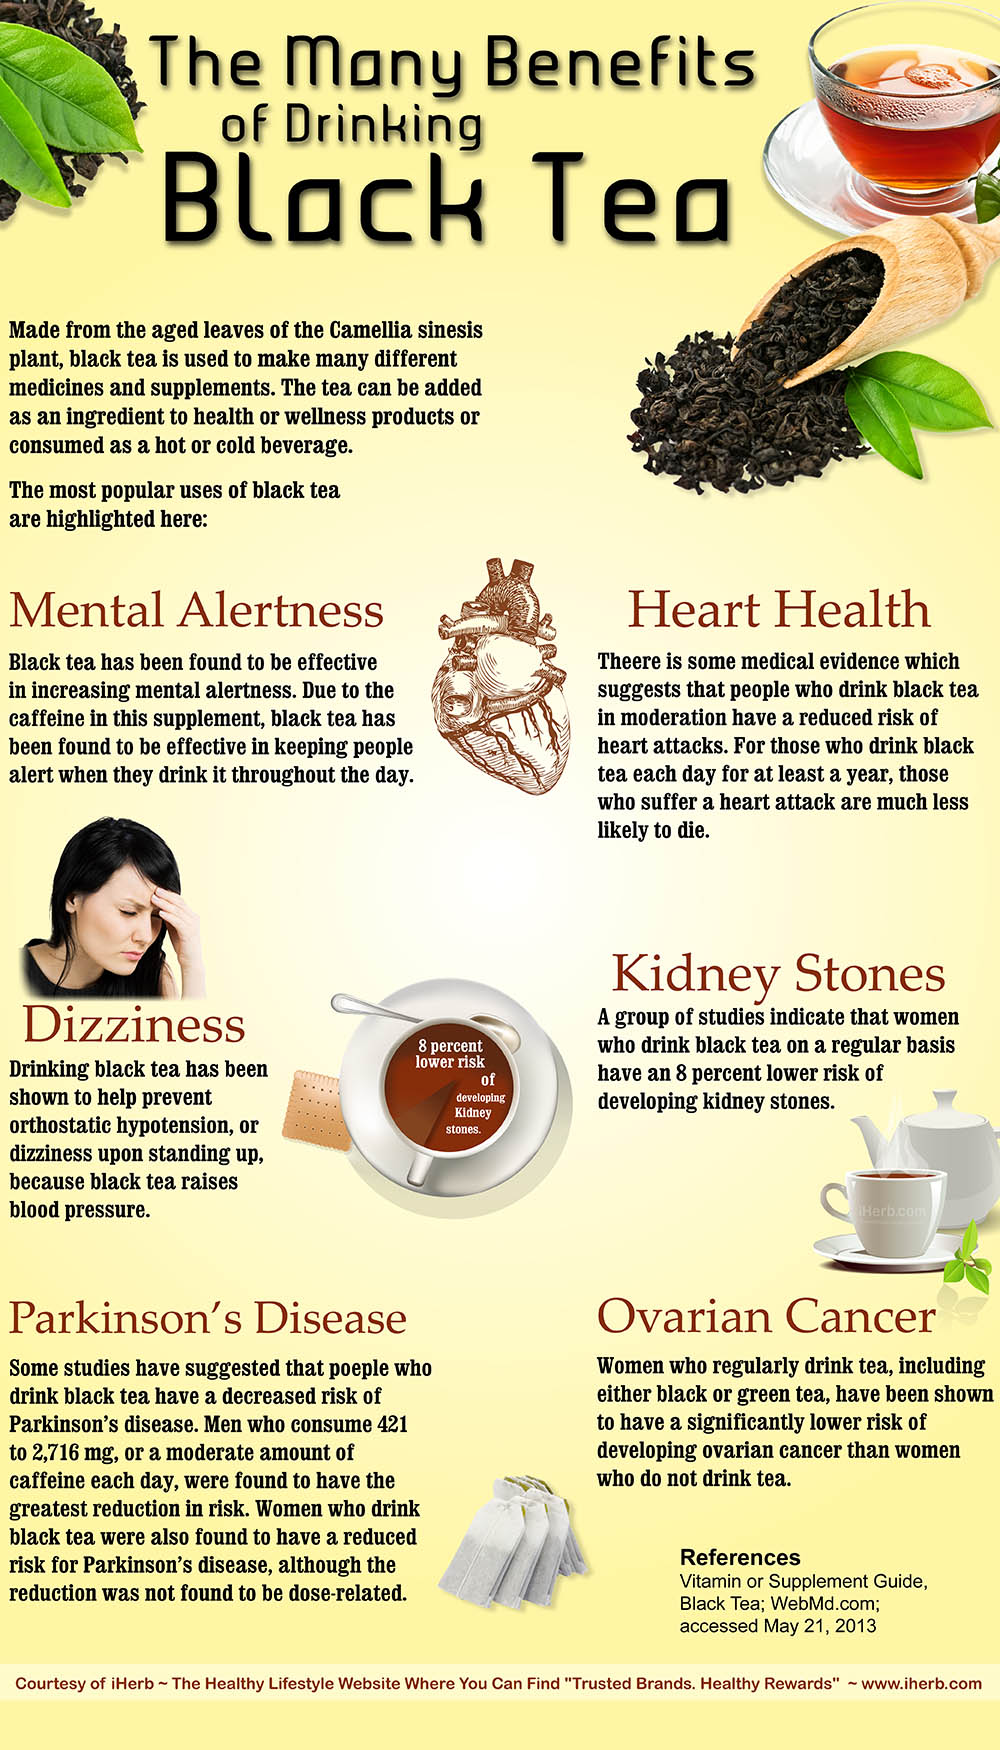 10 EvidenceBased Health Benefits of Black Tea